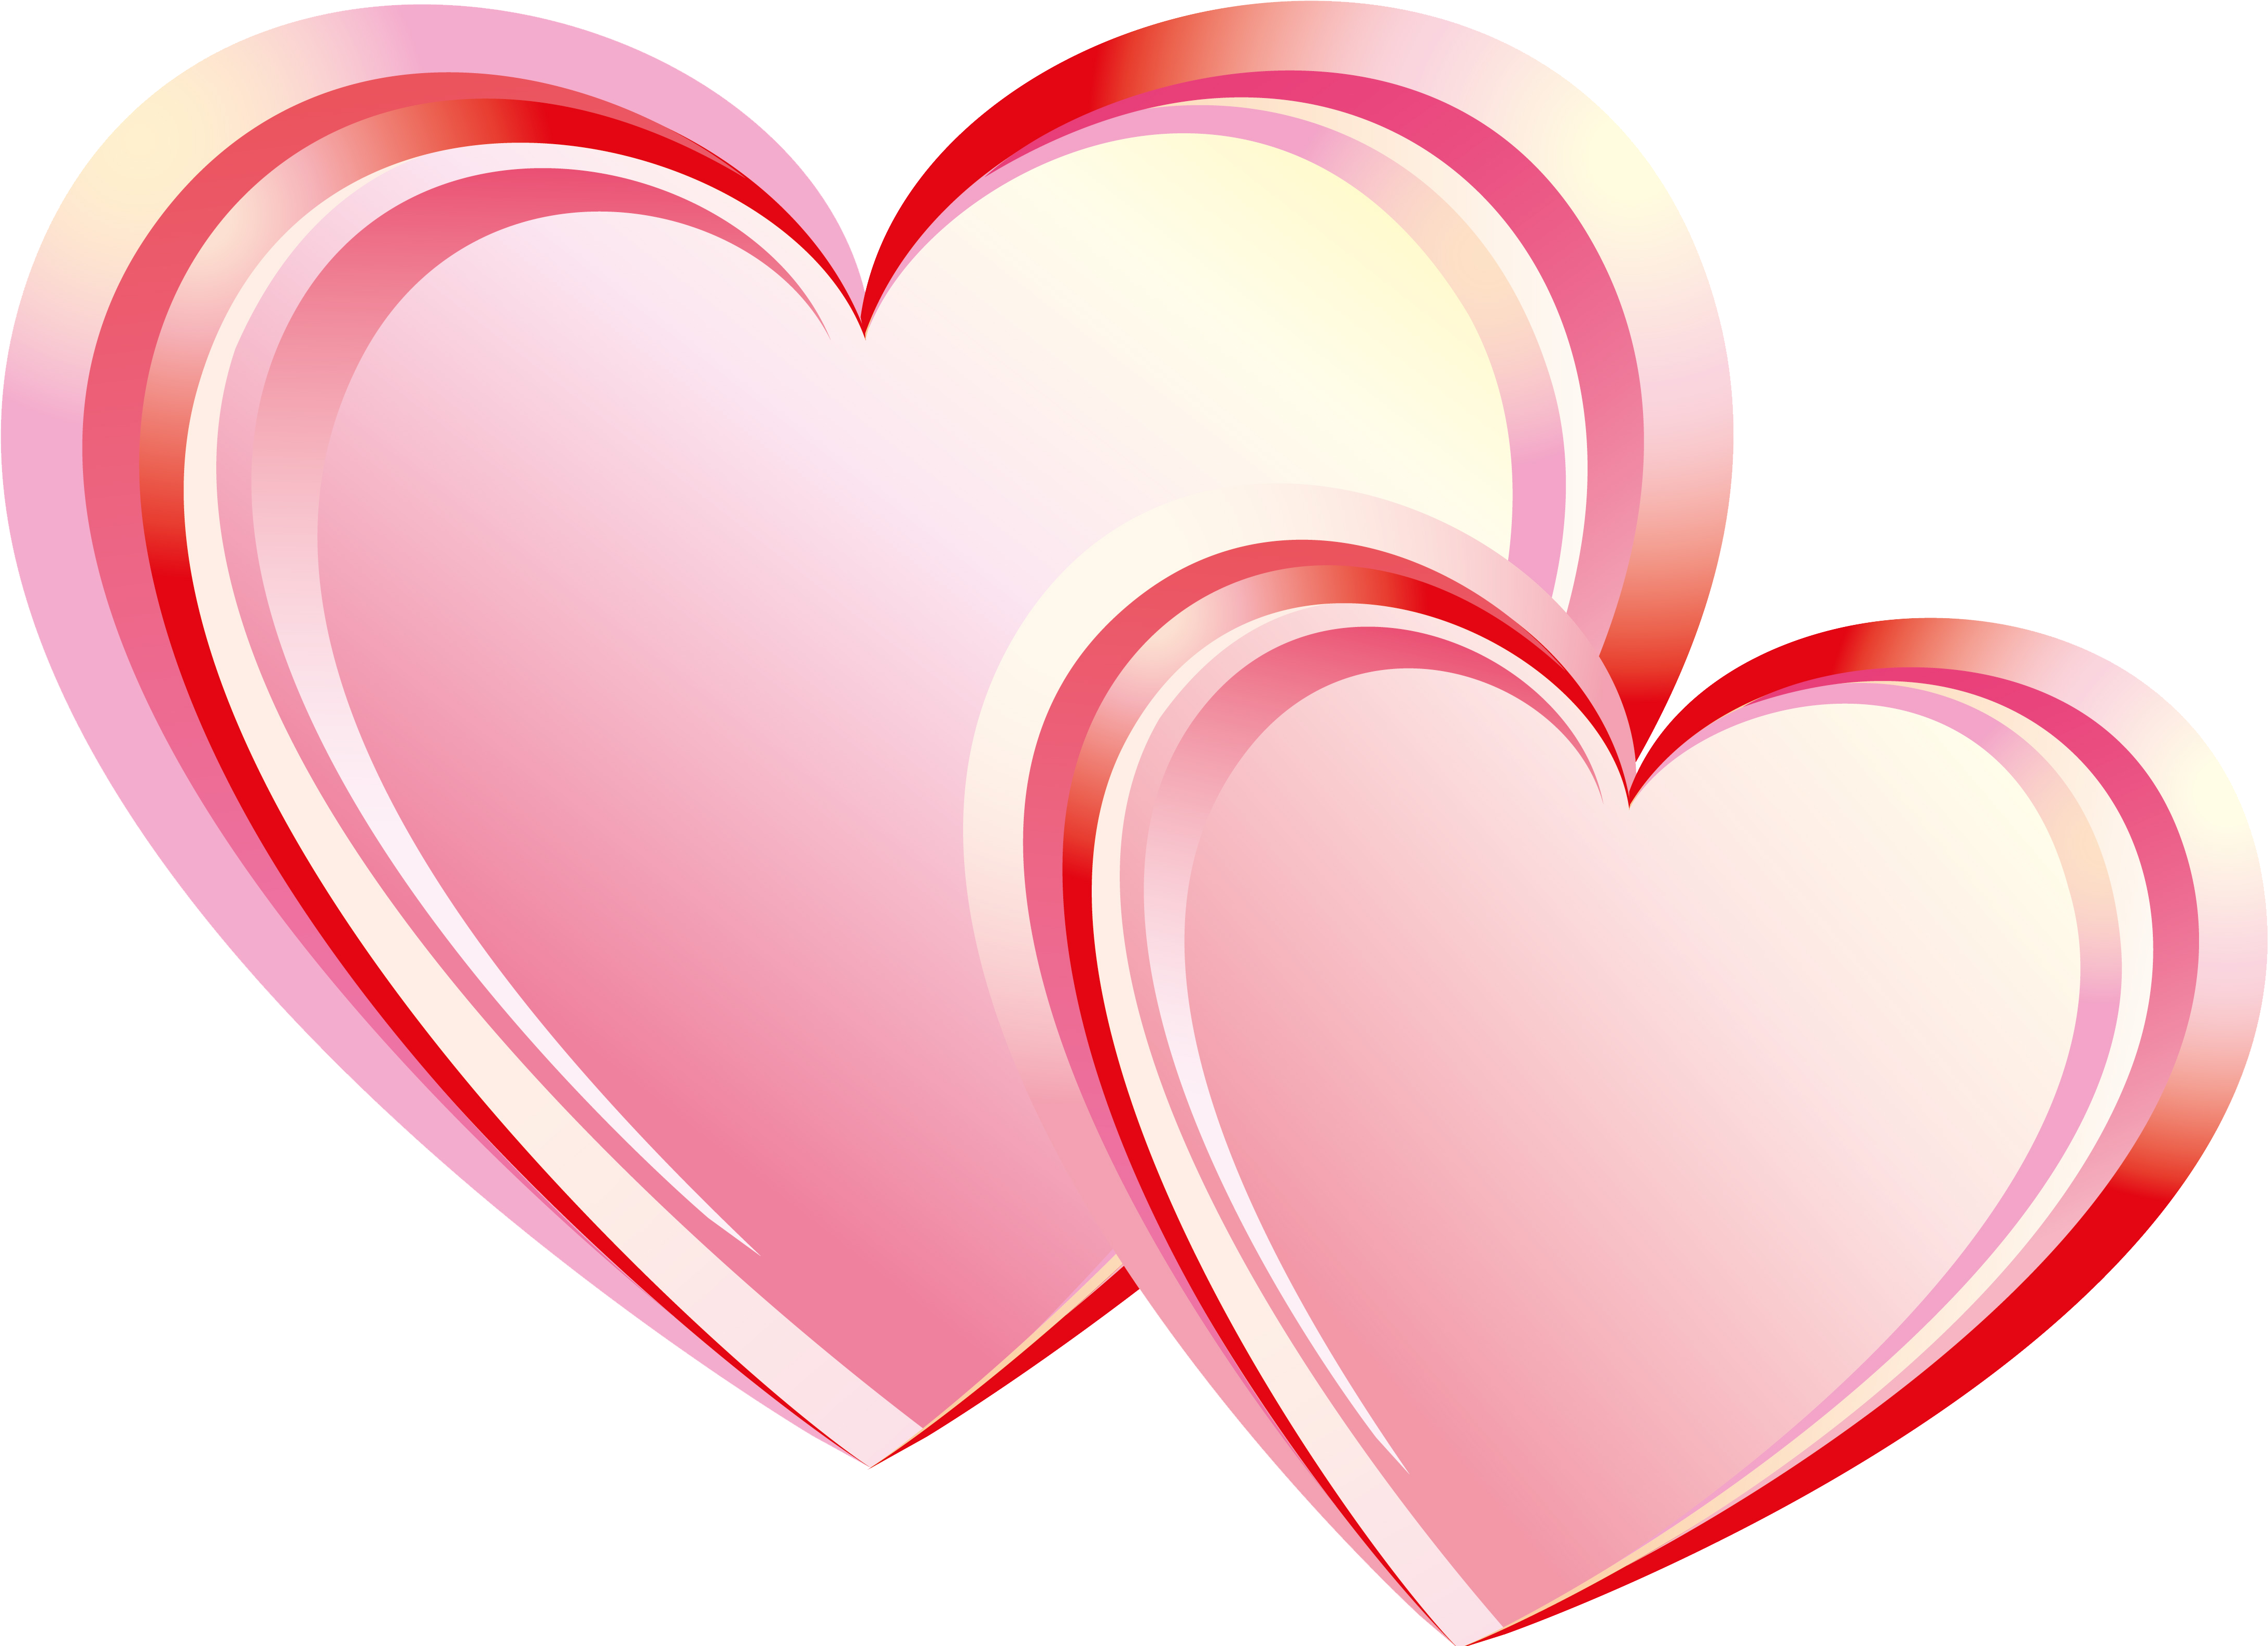 Transparent two become one clipart - Two Heart Png